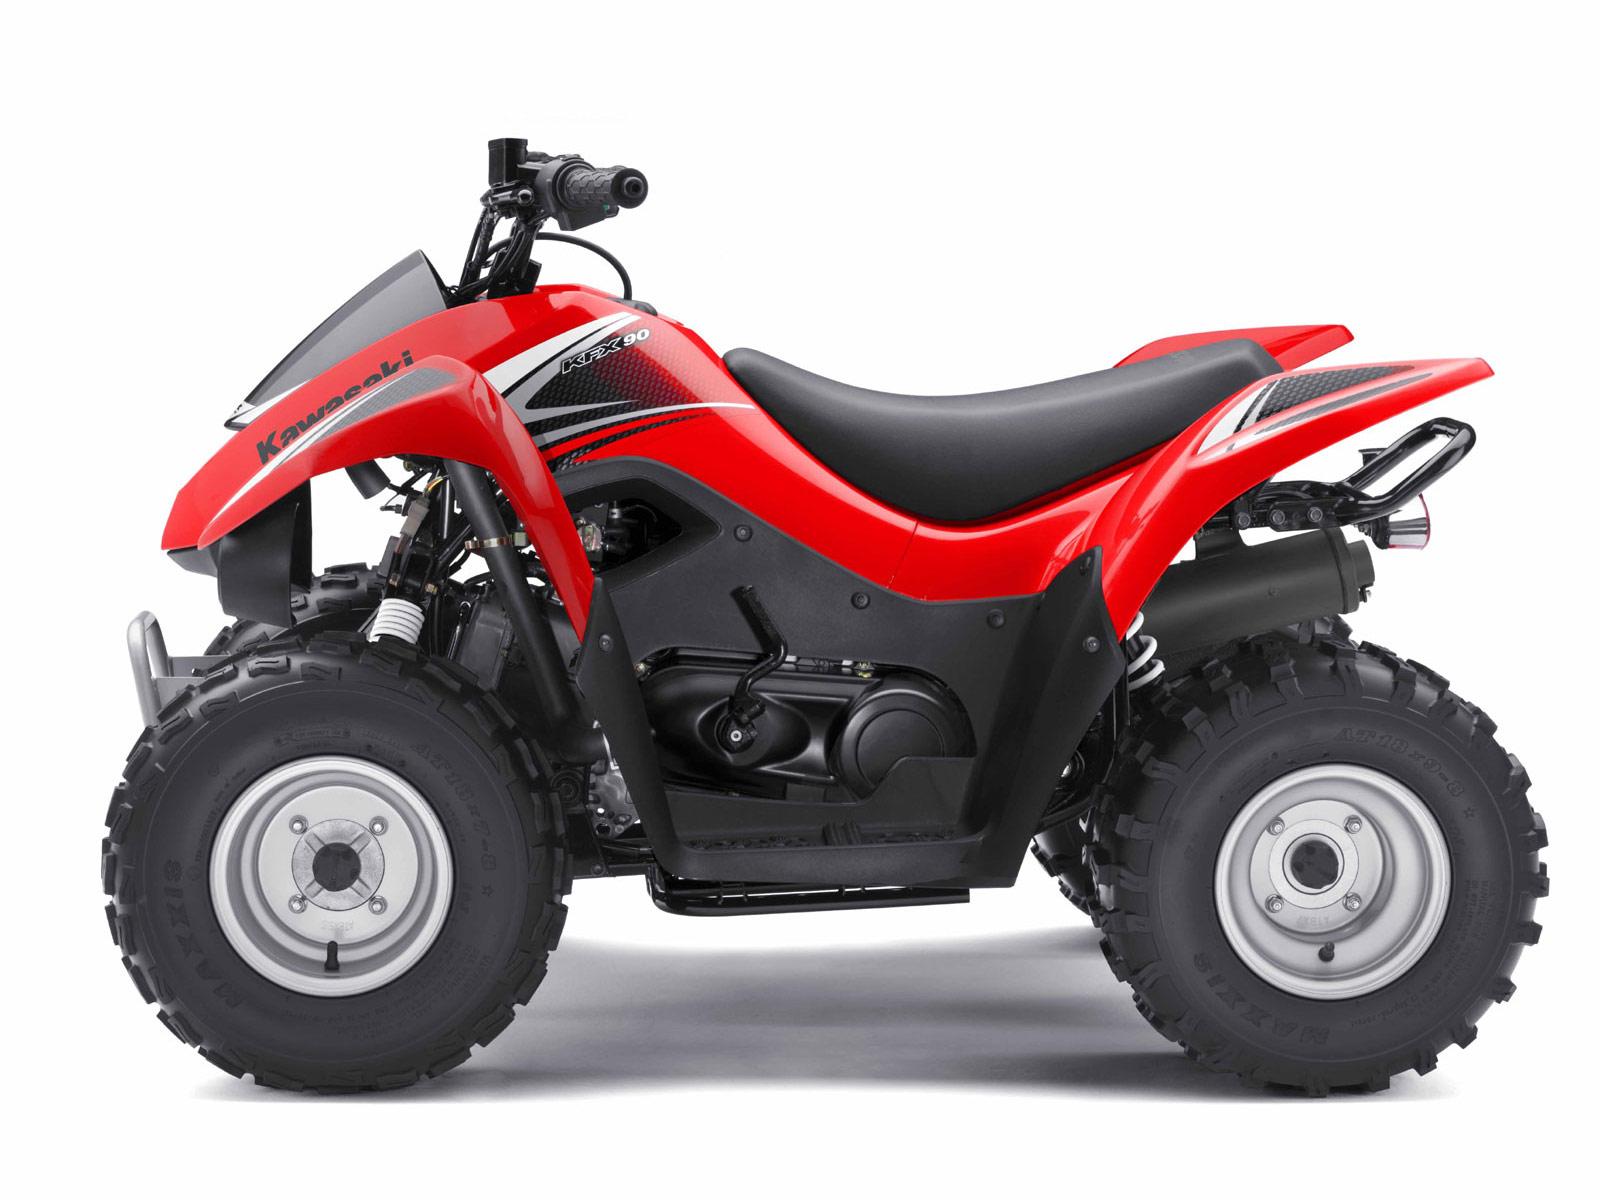 small resolution of wiring diagram for yamaha raptor wiring diagram for yamaha grizzly elsavadorla 1989 mastercraft wiring diagram 2007 yamaha waverunner wiring diagram